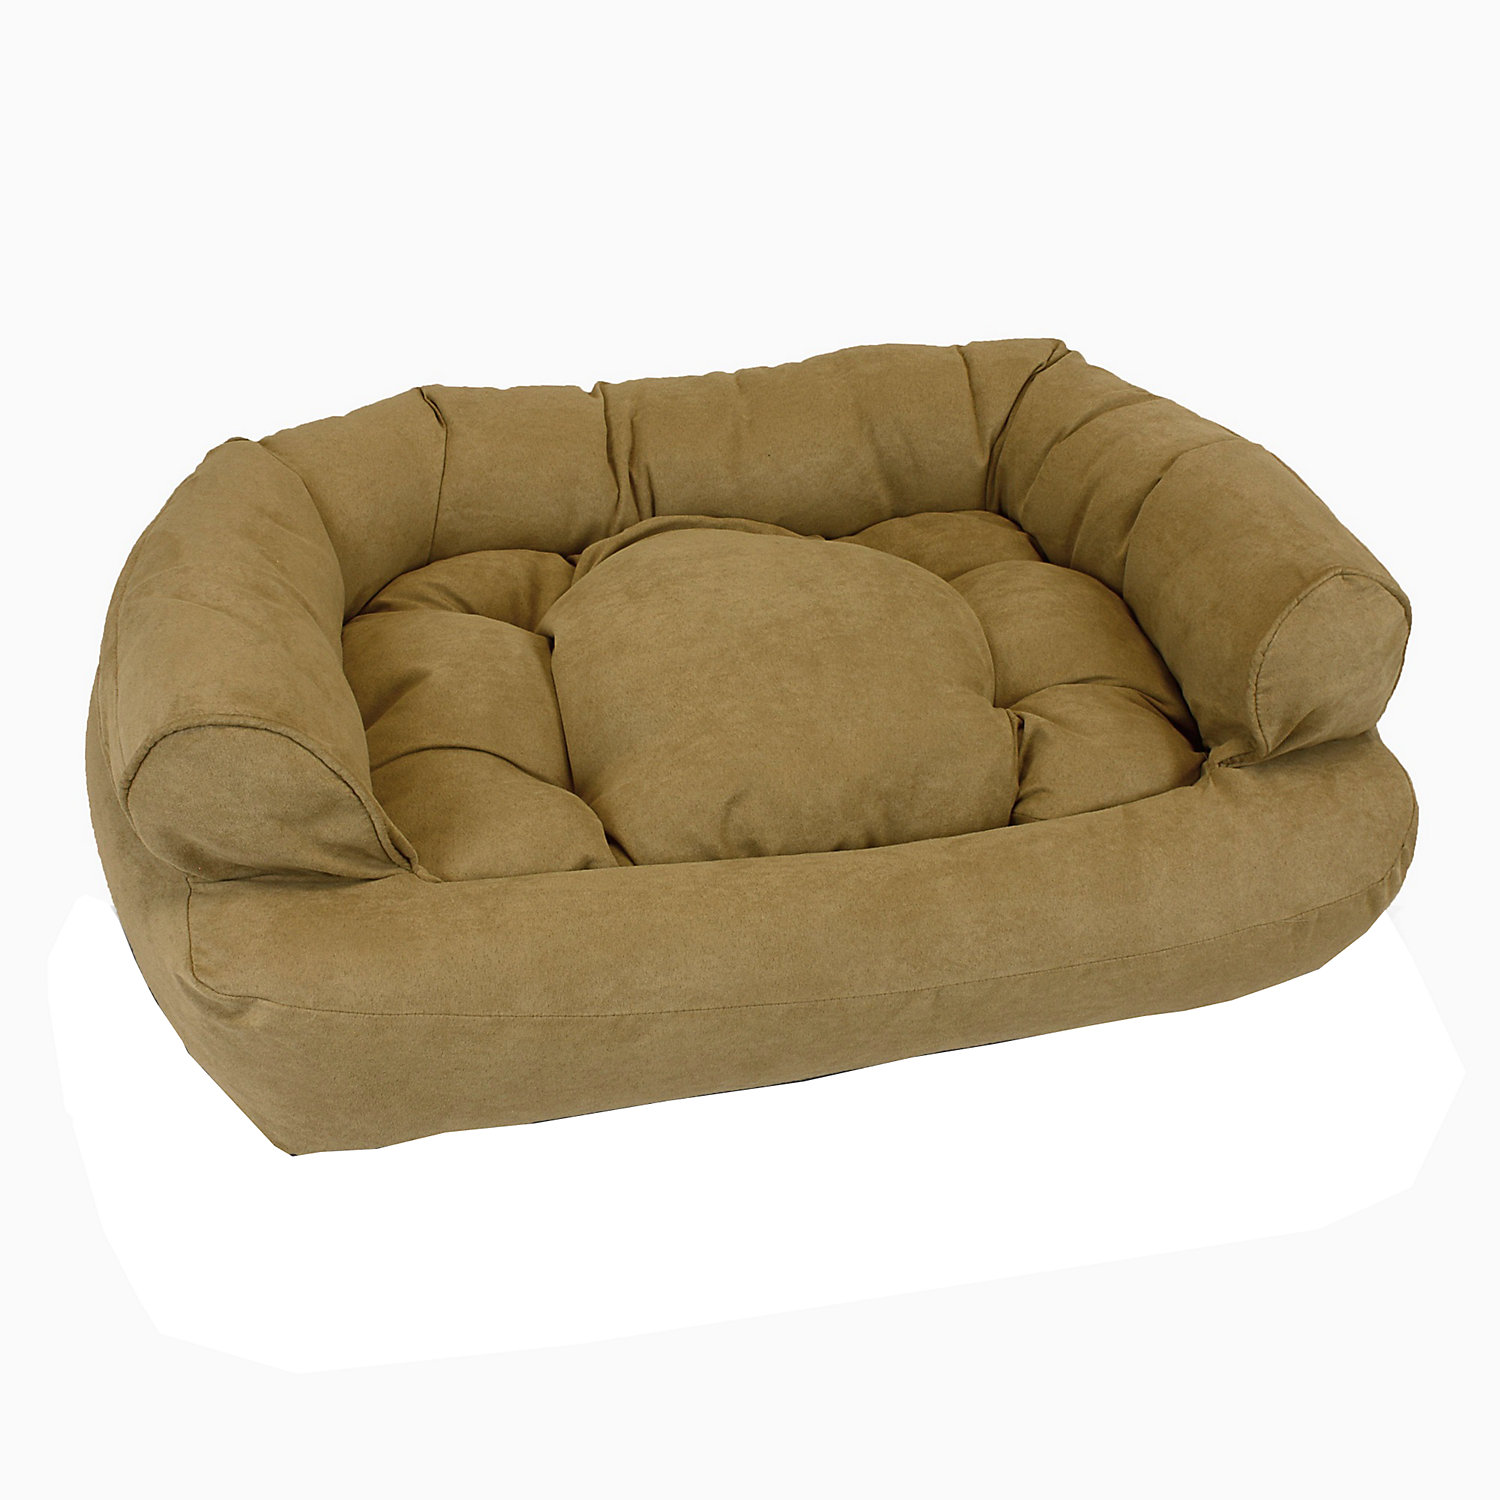 Snoozer Luxury Micro Suede Overstuffed Pet Sofa in Camel 30 L x 40 W Large